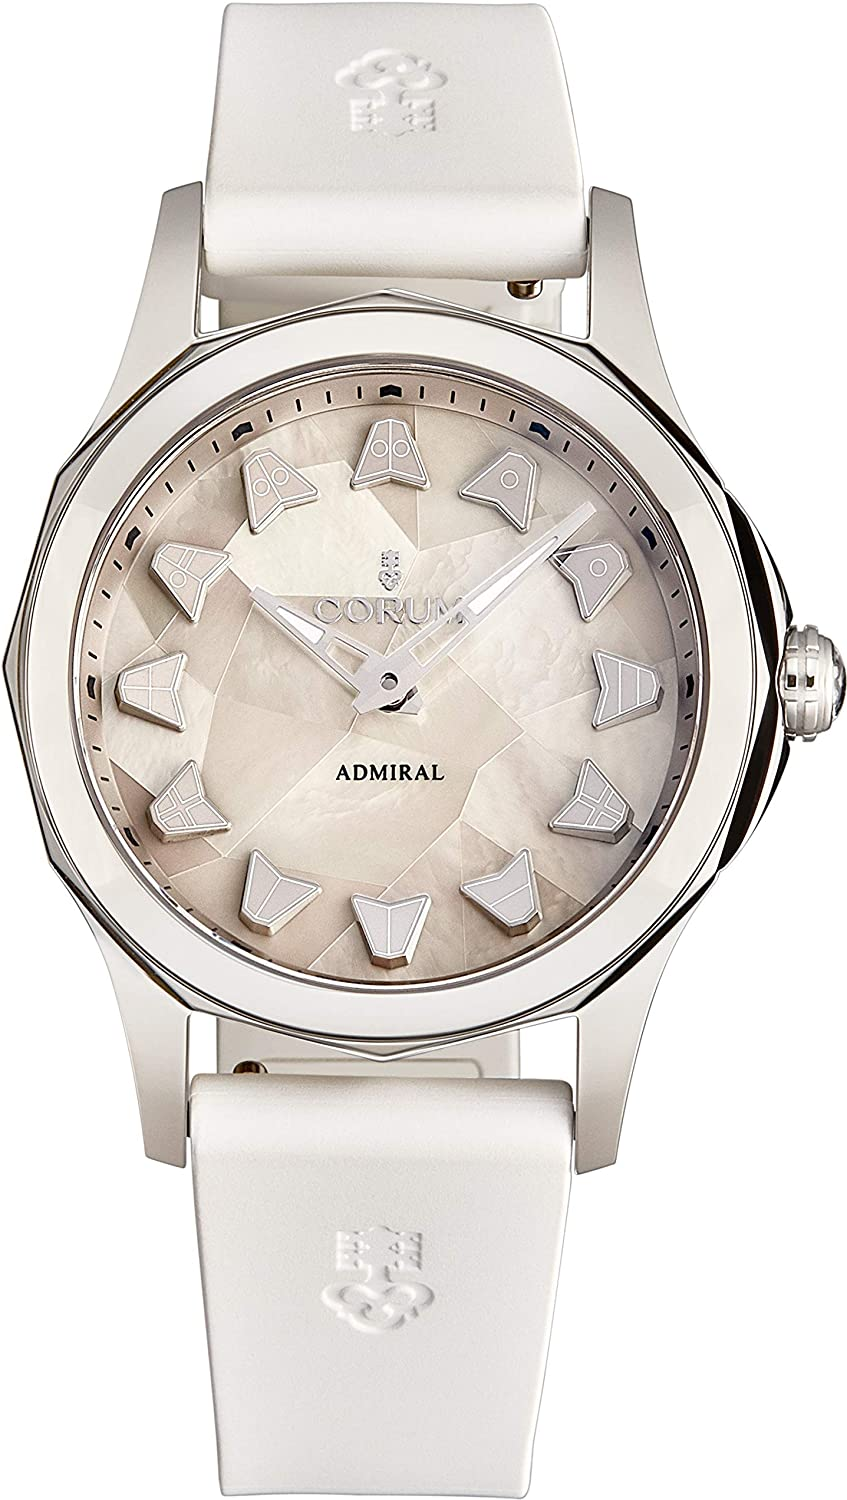 Corum Women's 'Admiral Cup' Automatic Watch - Mother of Pearl Marquetry Dial with Silver Luminous Hands - Sapphire Crystal and White Rubber Strap Swiss Watch for Women A400/03589